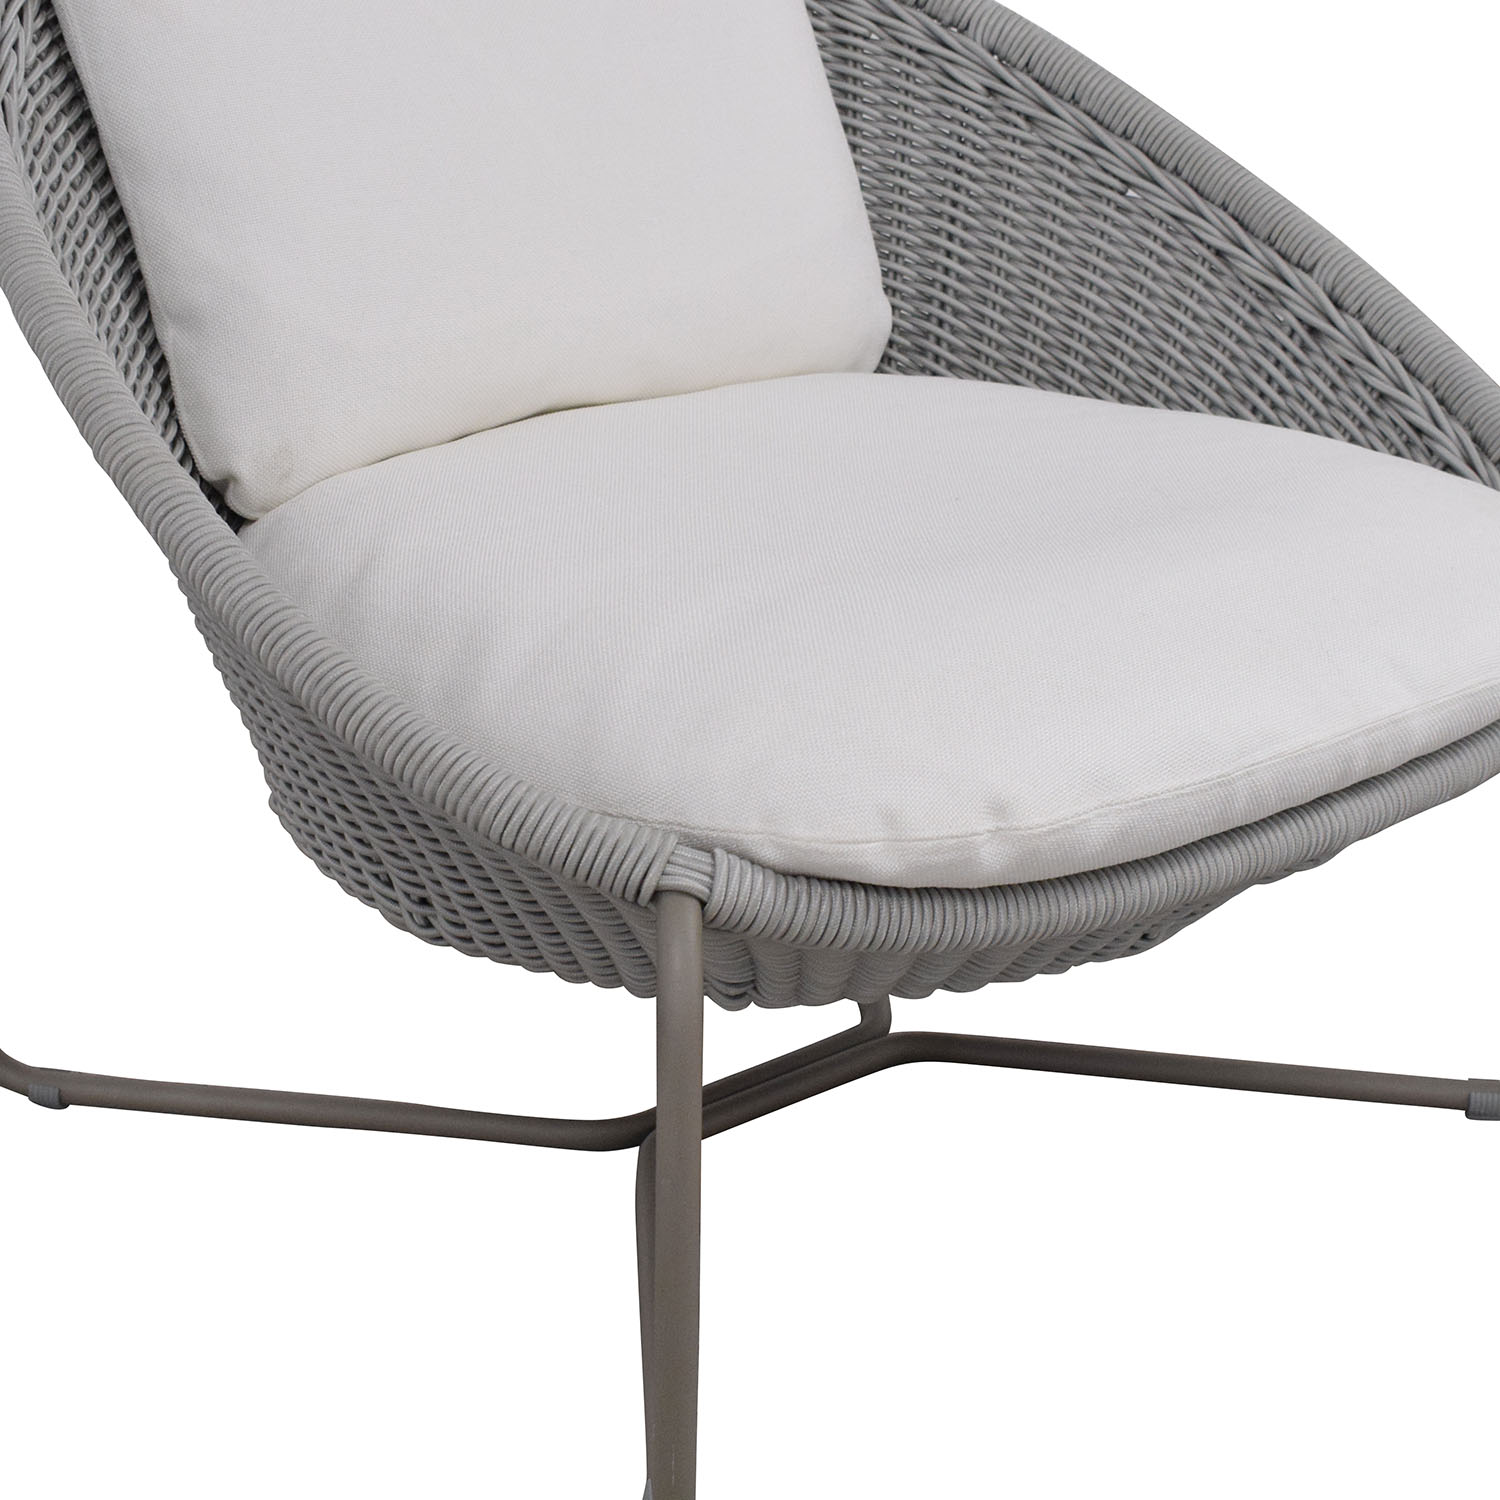 Crate & Barrel Crate & Barrel Morocco Oval Lounge Chair with Cushion second hand